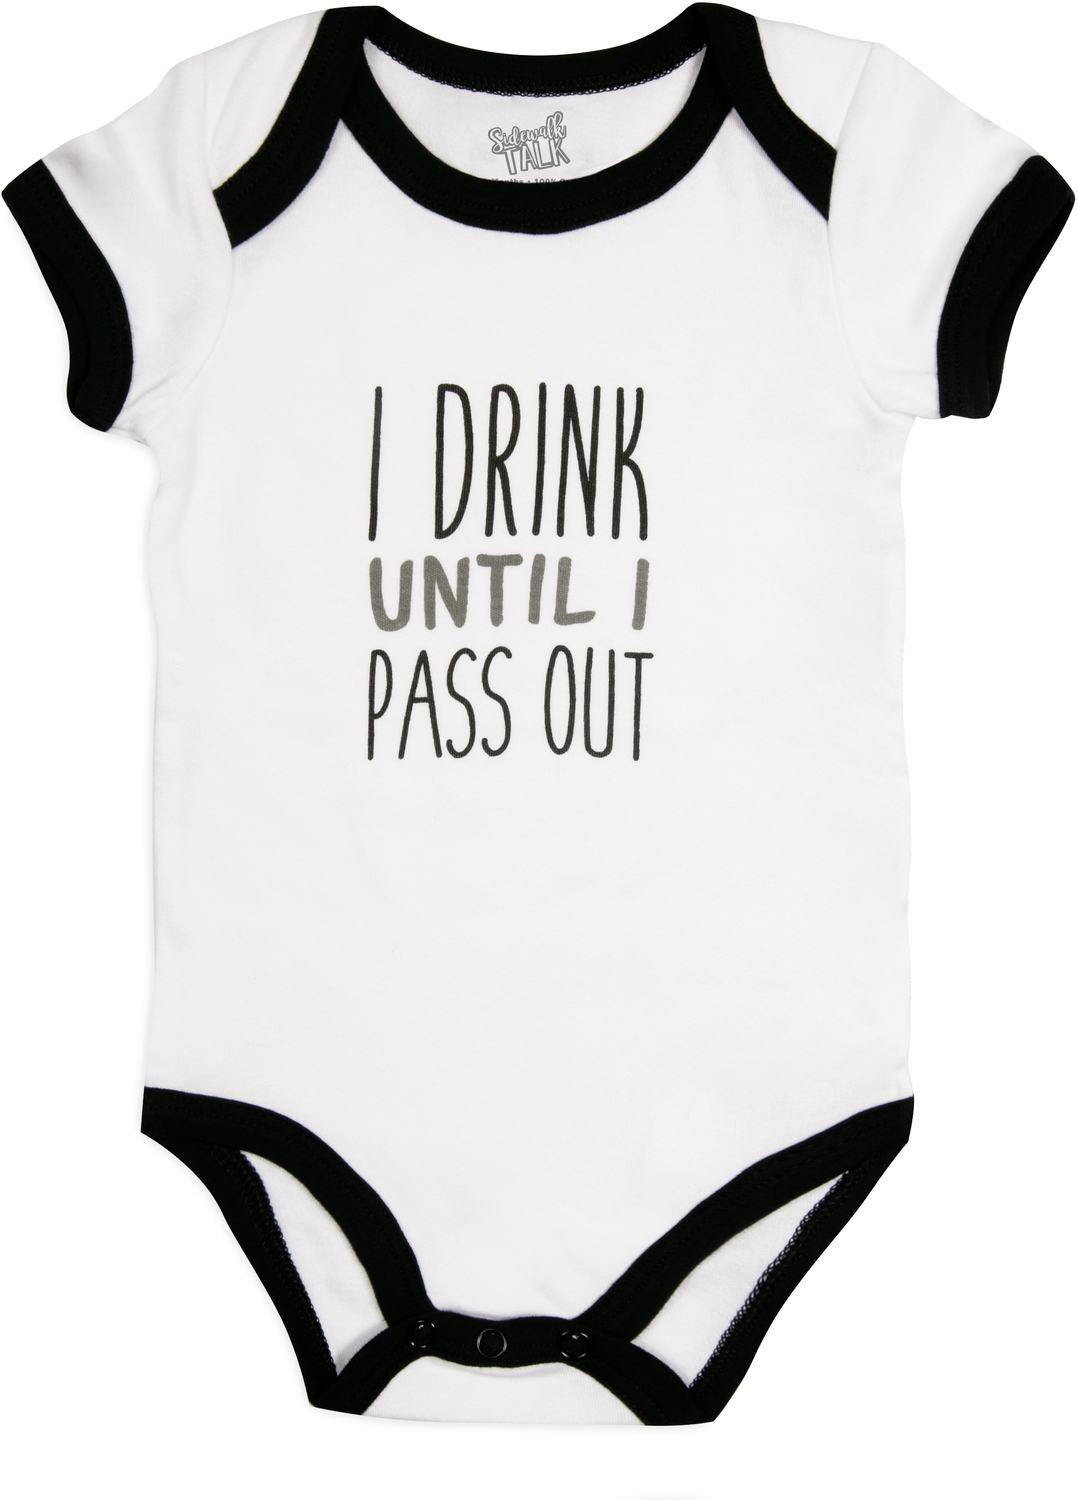 Pass Out by Sidewalk Talk - Pass Out - 6-12 Months Black Trimmed Onesie